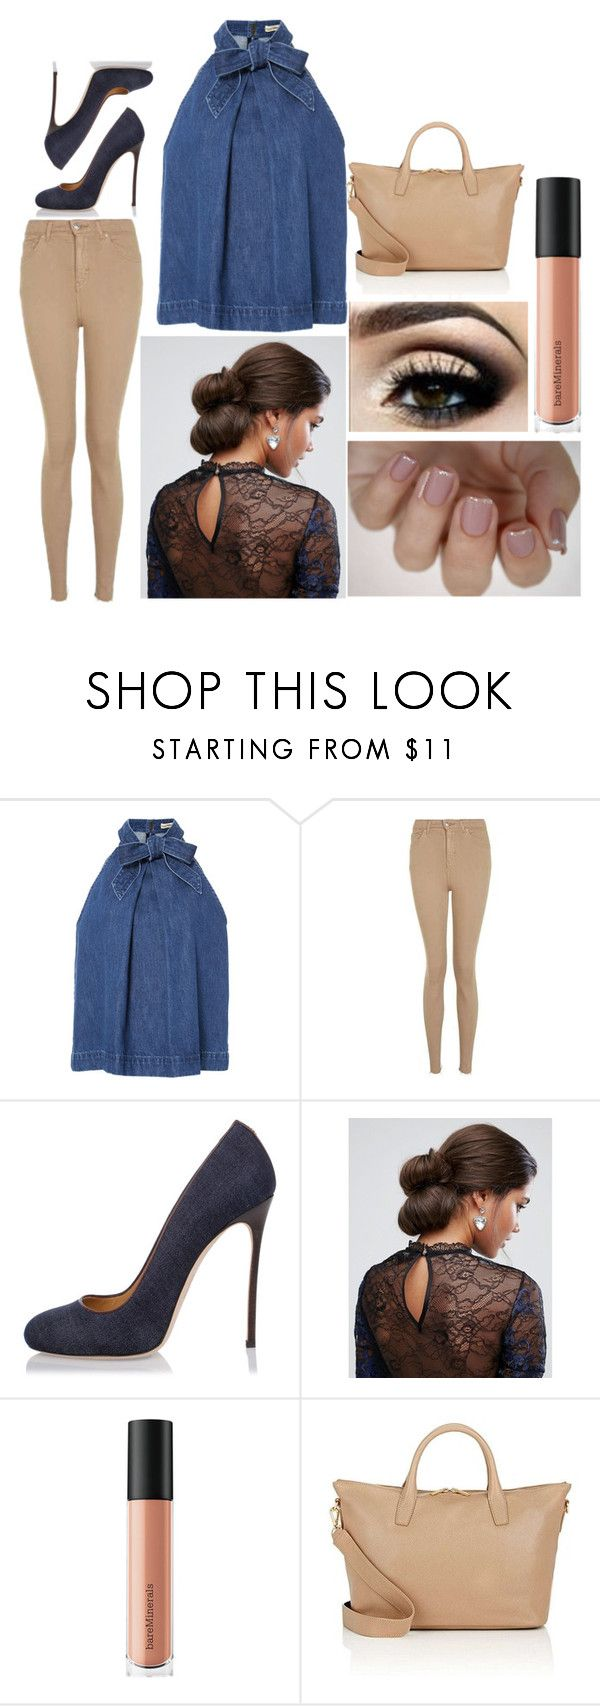 """""""Stephanie: August 25, 2017"""" by disneyfreaks39 ❤ liked on Polyvore featuring Ulla Johnson, Topshop, Dsquared2, ASOS, Bare Escentuals and Barneys New York"""